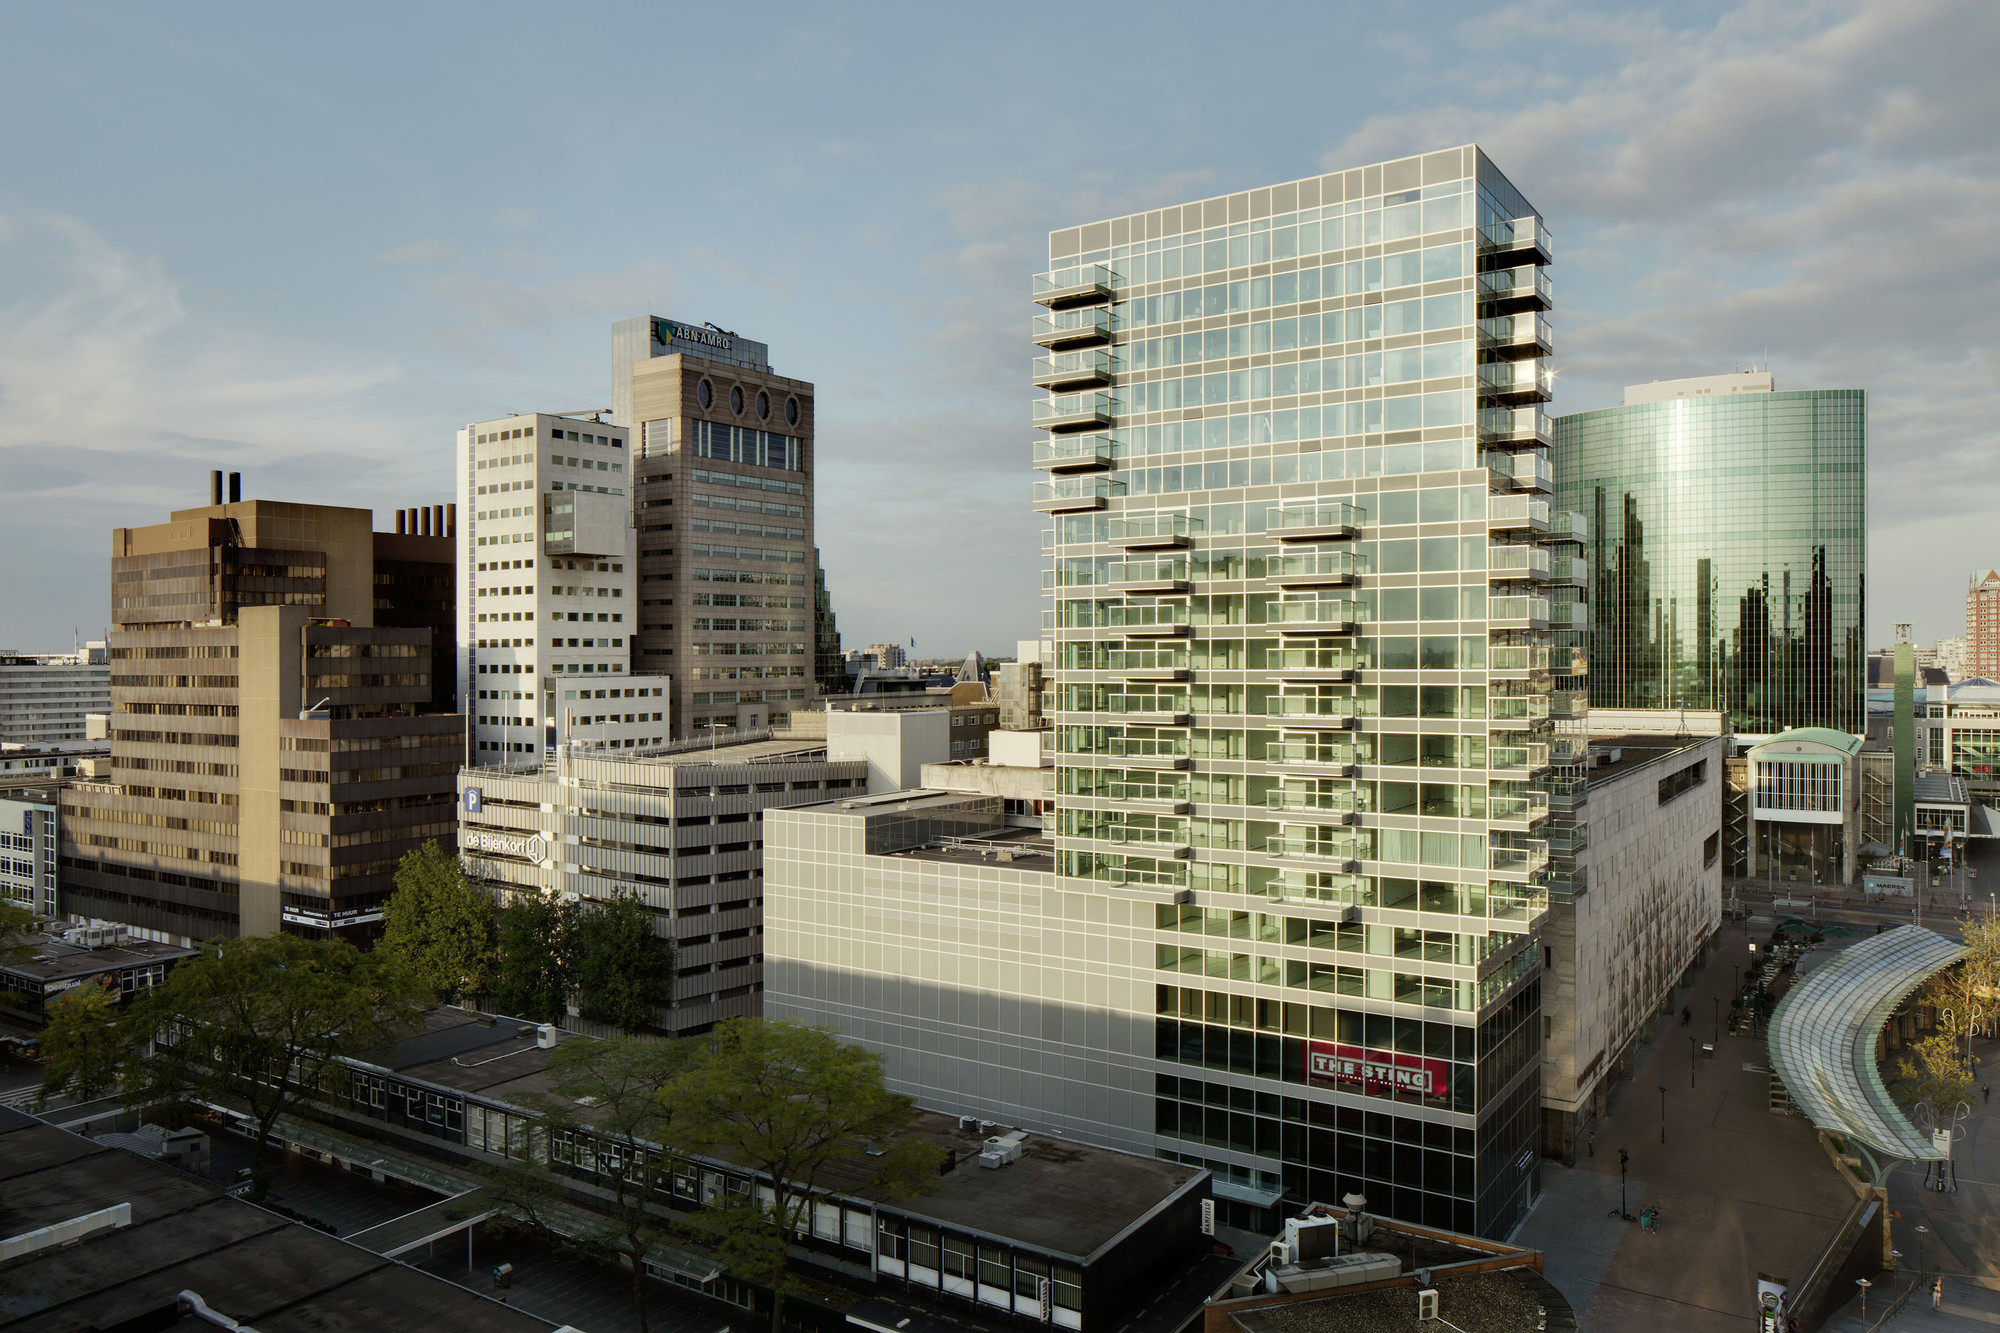 B' Tower / Wiel Arets Architects